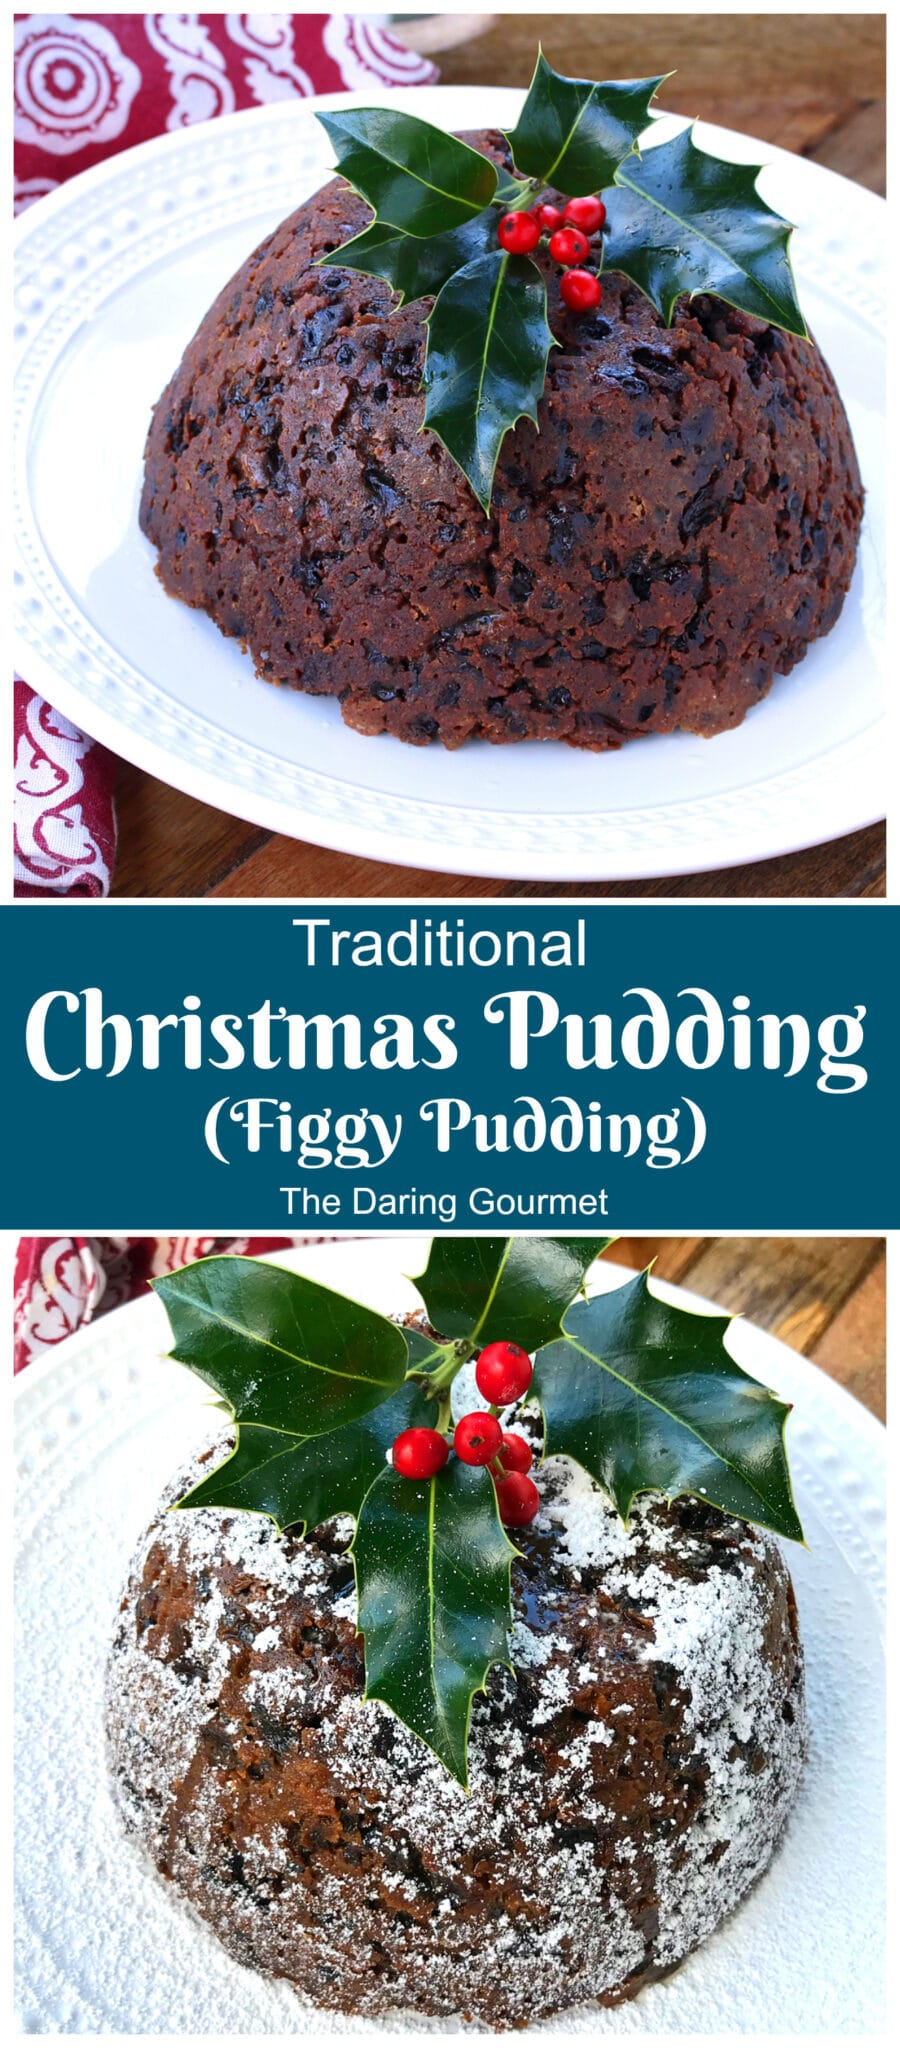 christmas pudding recipe authentic traditional best figgy pudding plum pudding